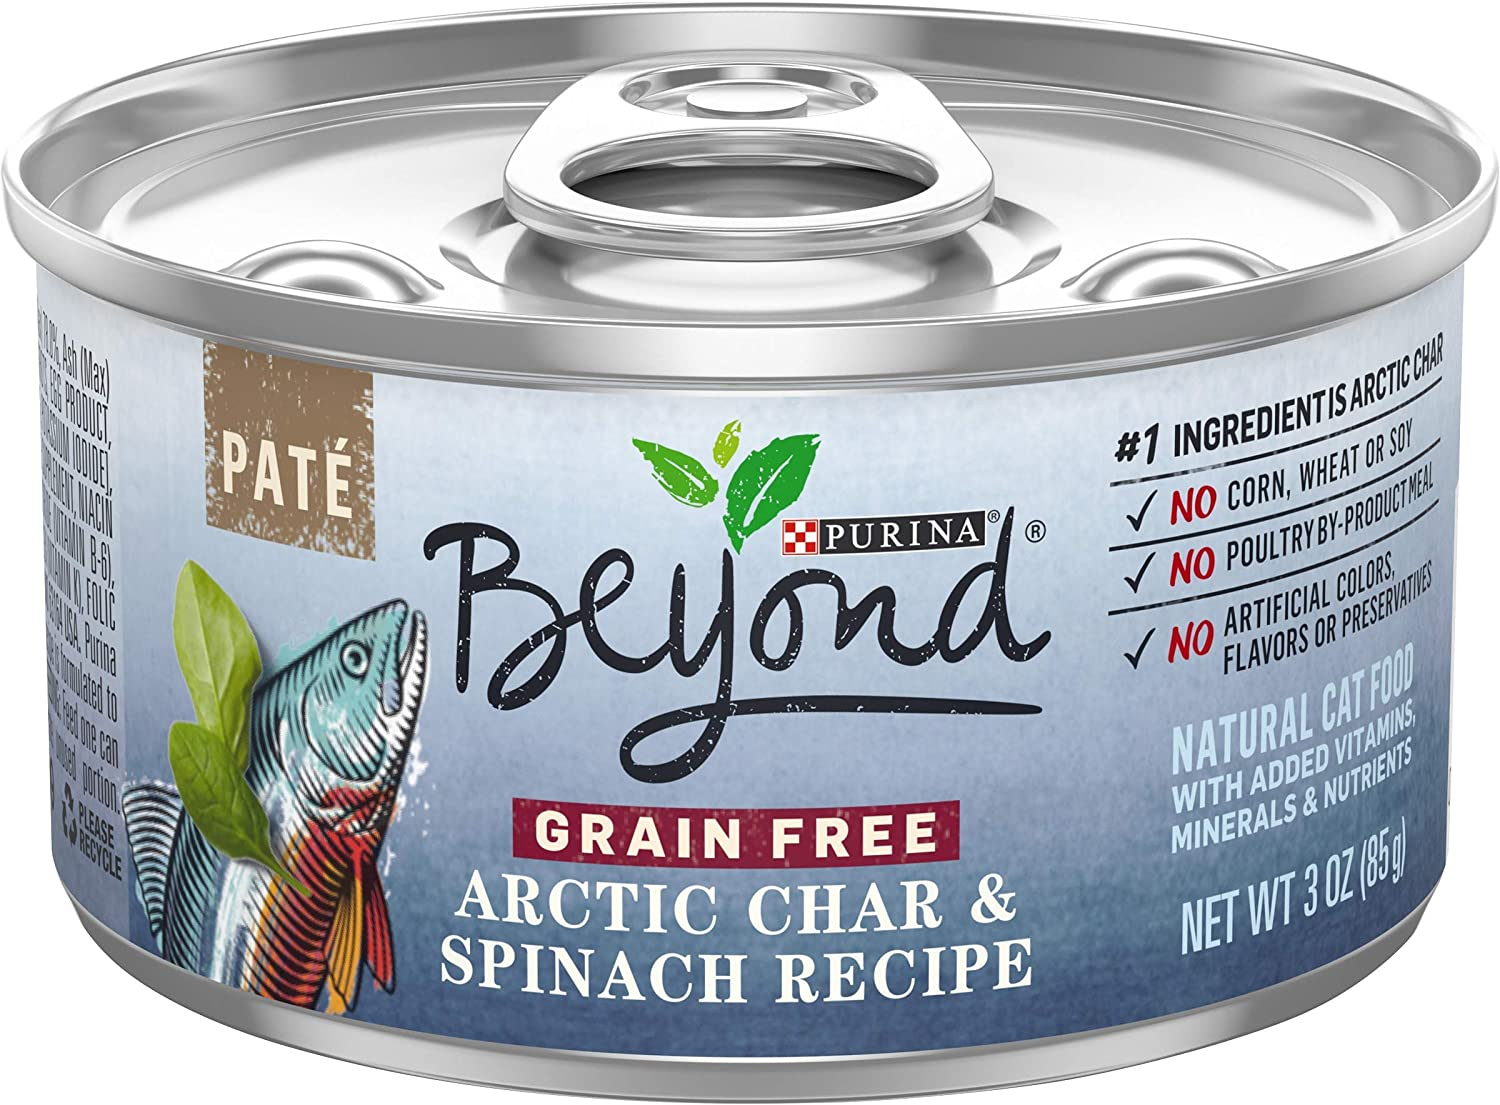 Purina Beyond Pate Grain Free Arctic Char & Spinach Recipe Adult Wet Cat Food - (12) 3 oz. Cans (Packaging May Vary)